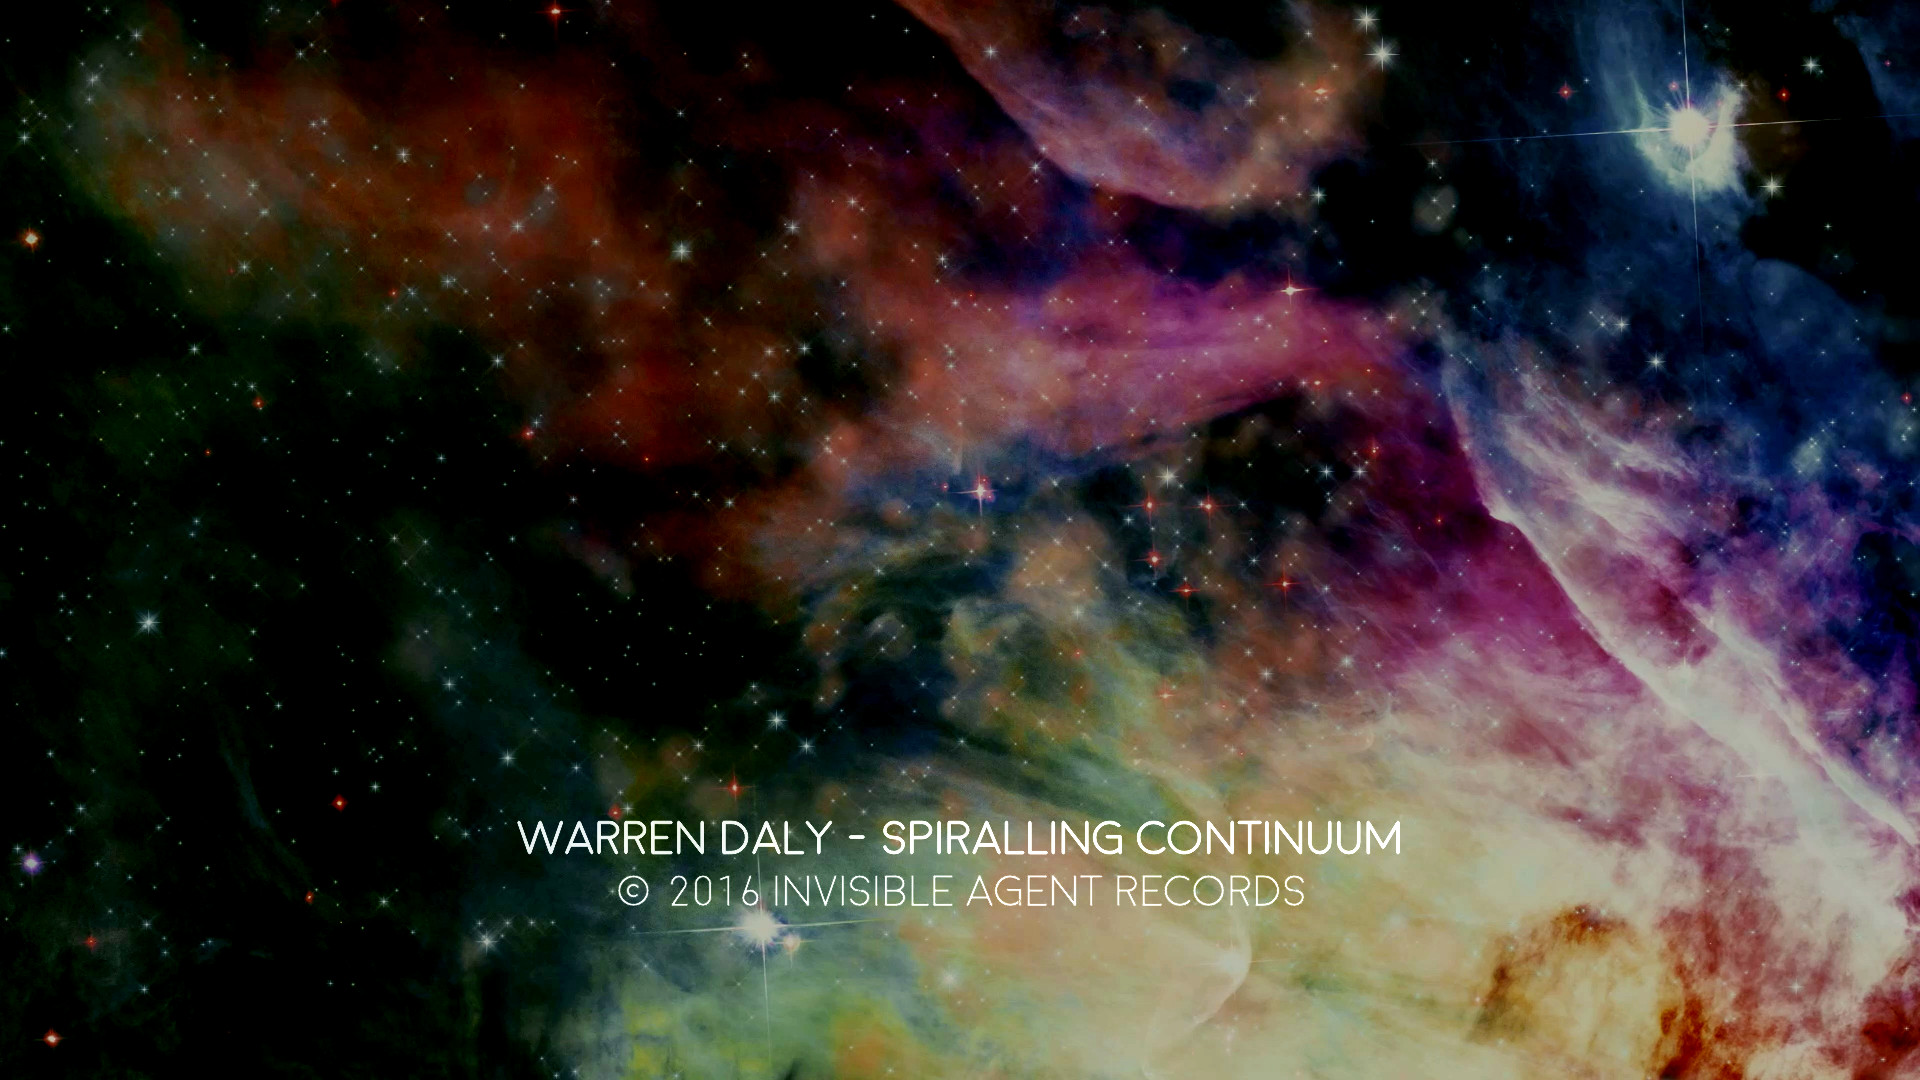 Ambient Space Video by Warren Daly - Spiralling Continuum Videos